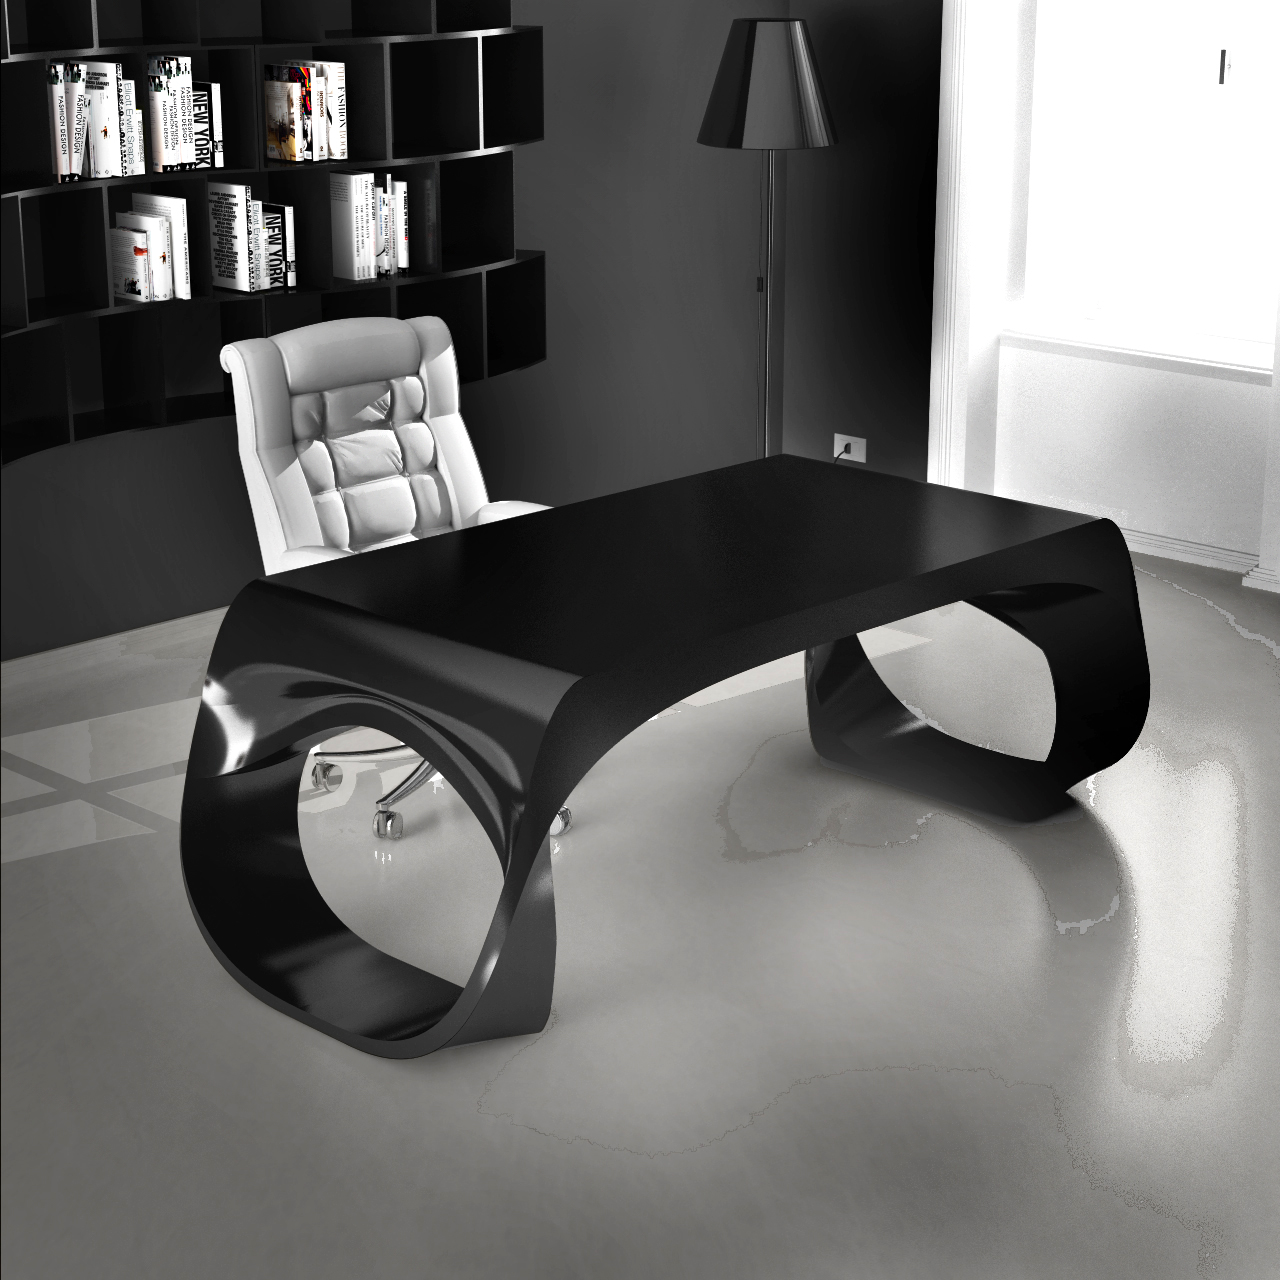 Infinity desk zad zone of absolute designarredamenti - Scrivania design moderno ...